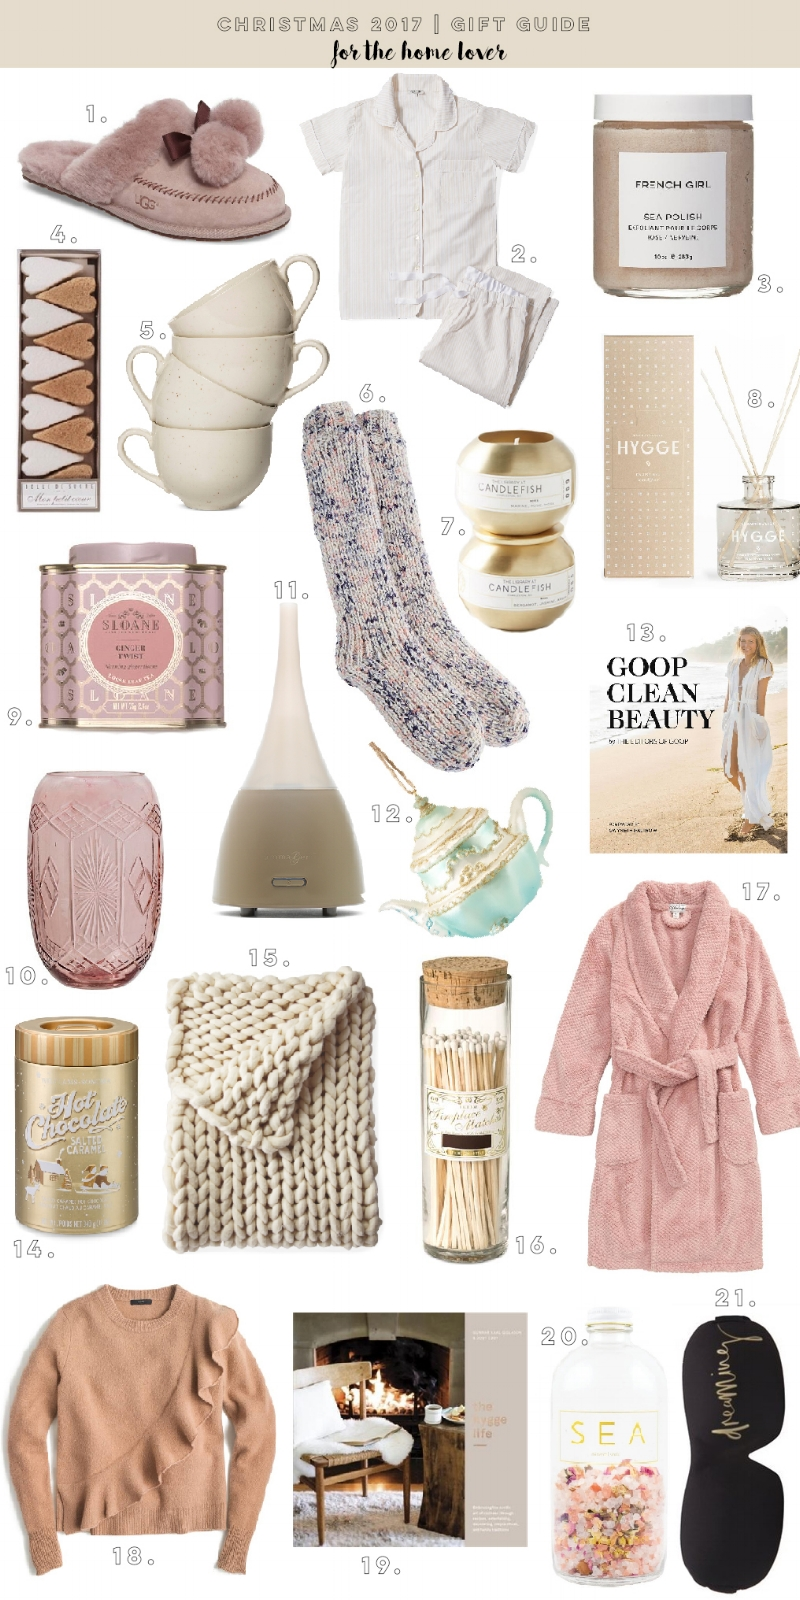 Christmas Gift Guide for the Home Lover via theblondielocks.com